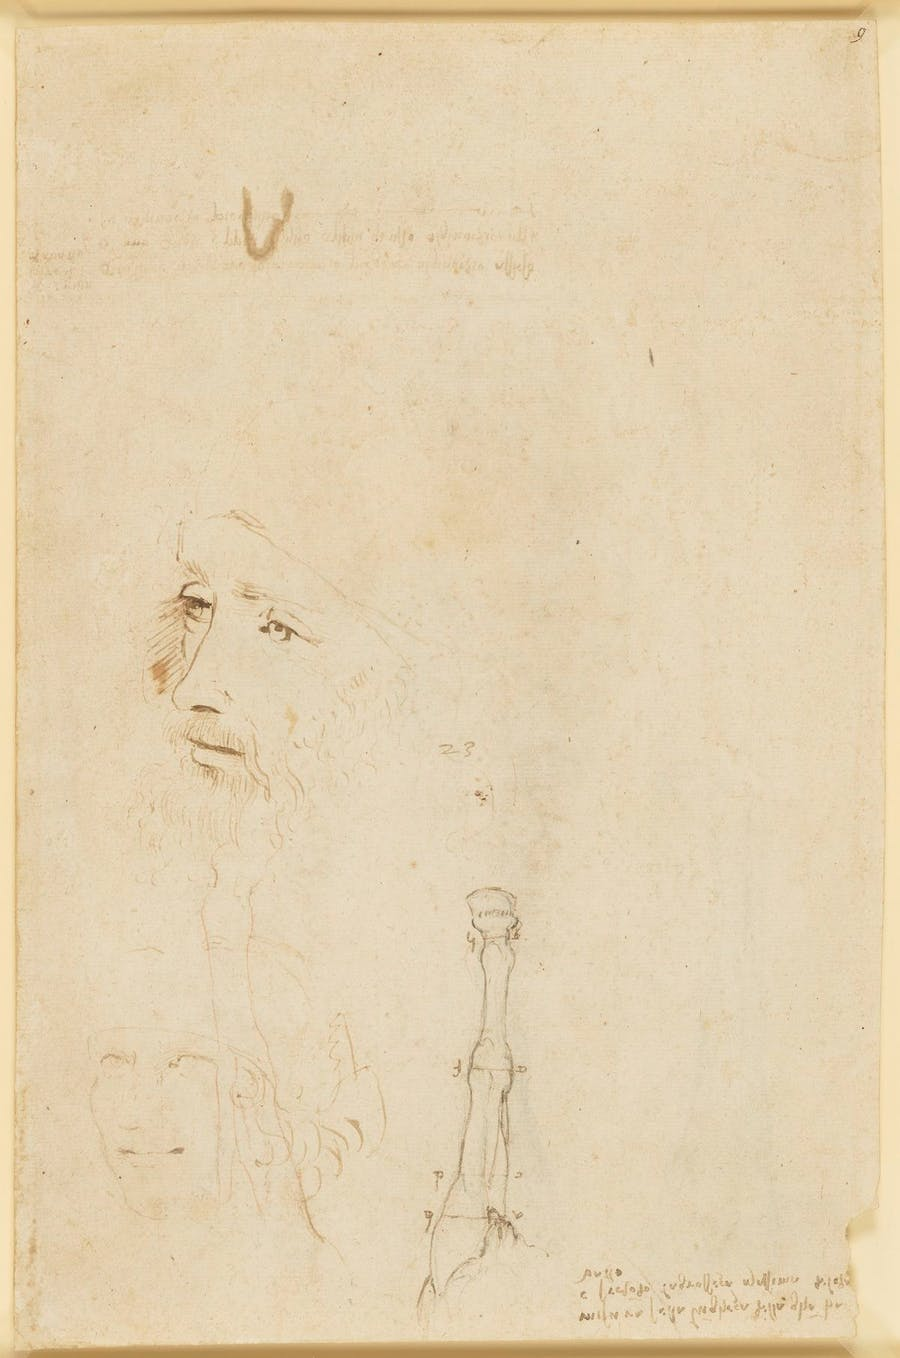 Esquisse, portrait de Léonard de Vinci et une patte de cheval, ca. 1517–18, image Royal Collection Trust : © Her Majesty Queen Elizabeth II 2019